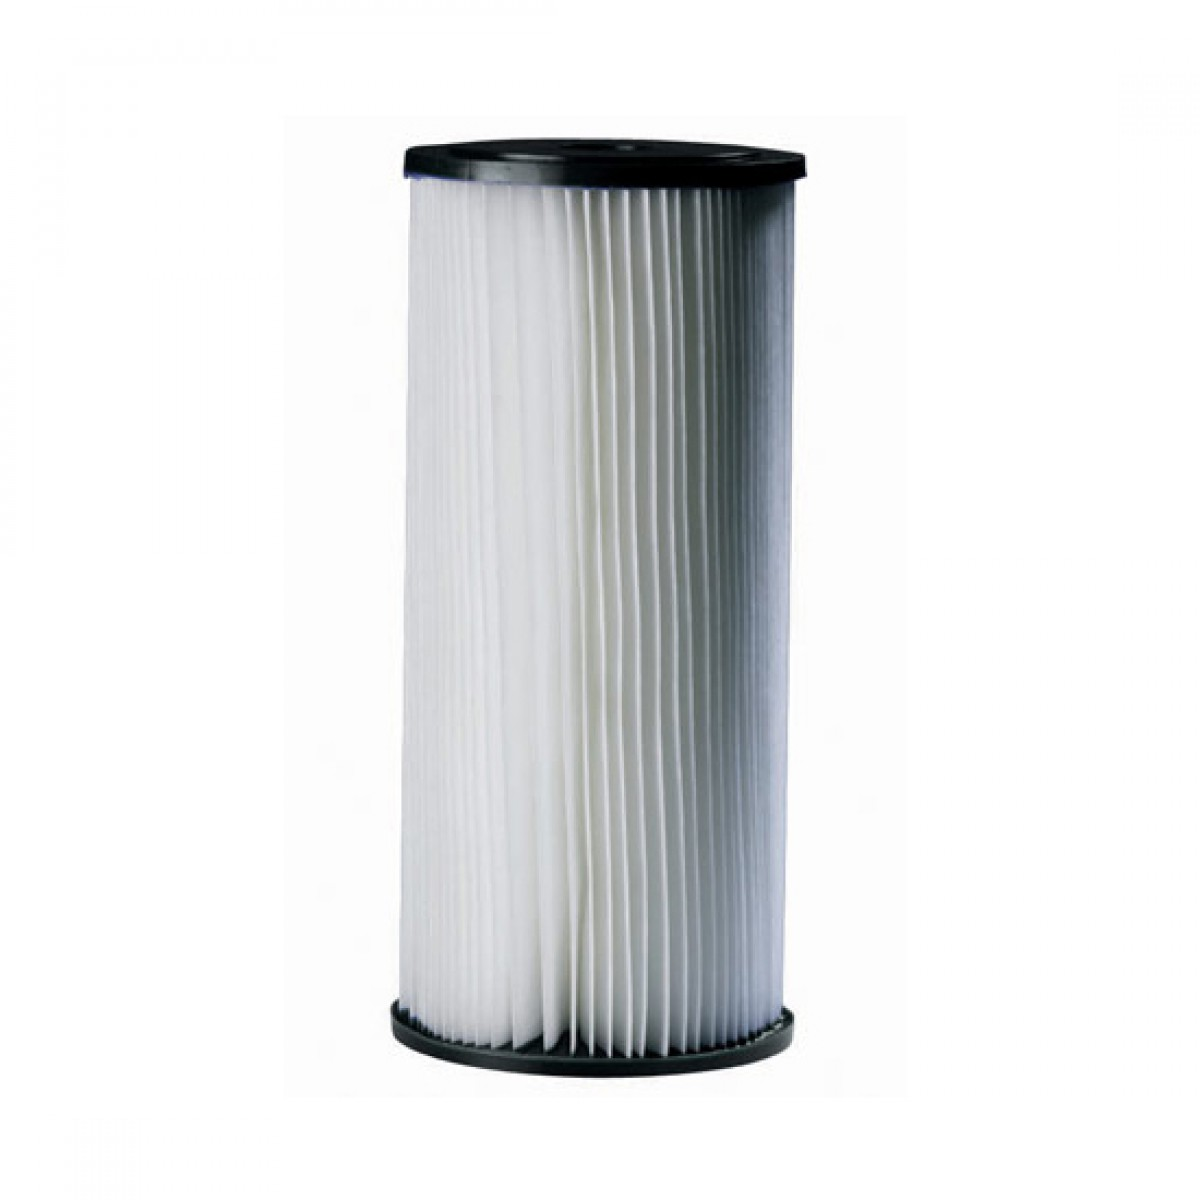 To6 Omnifilter Whole House Filter Replacement Cartridge